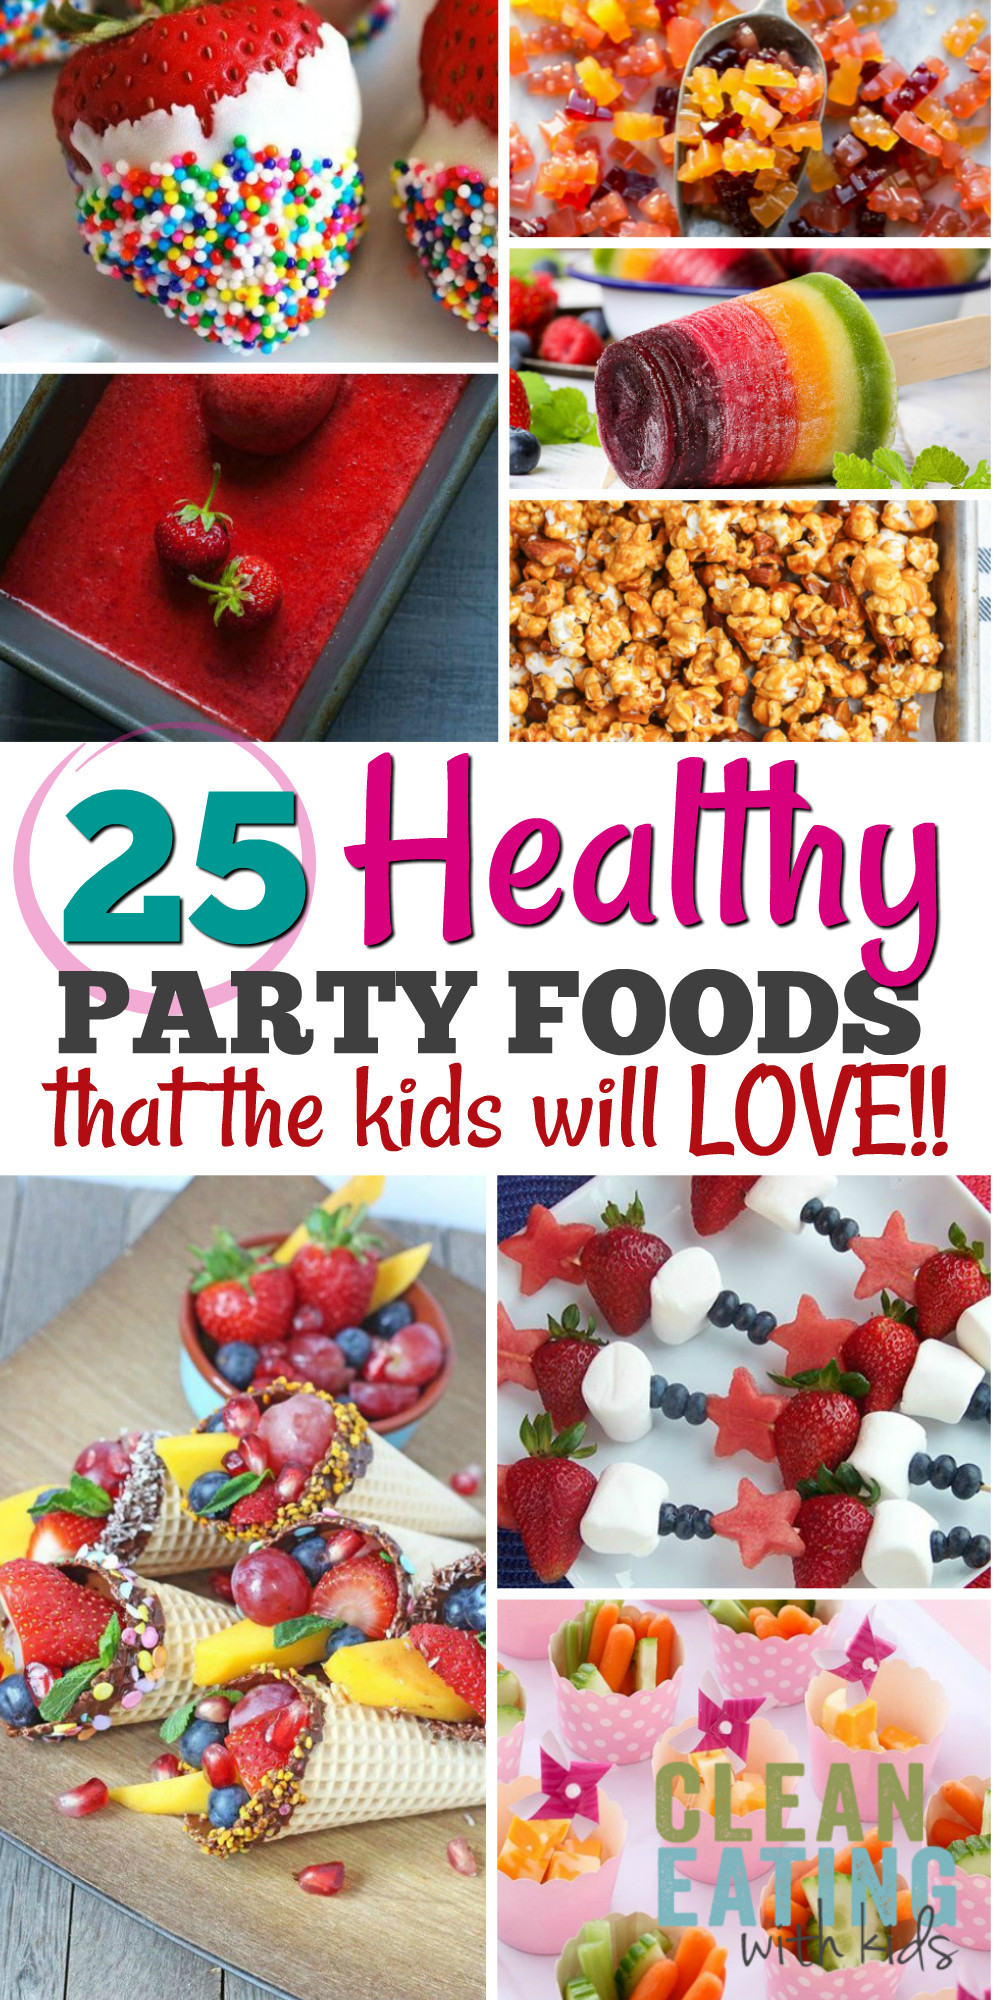 Healthy Party Snacks For Kids  25 Healthy Birthday Party Food Ideas Clean Eating with kids